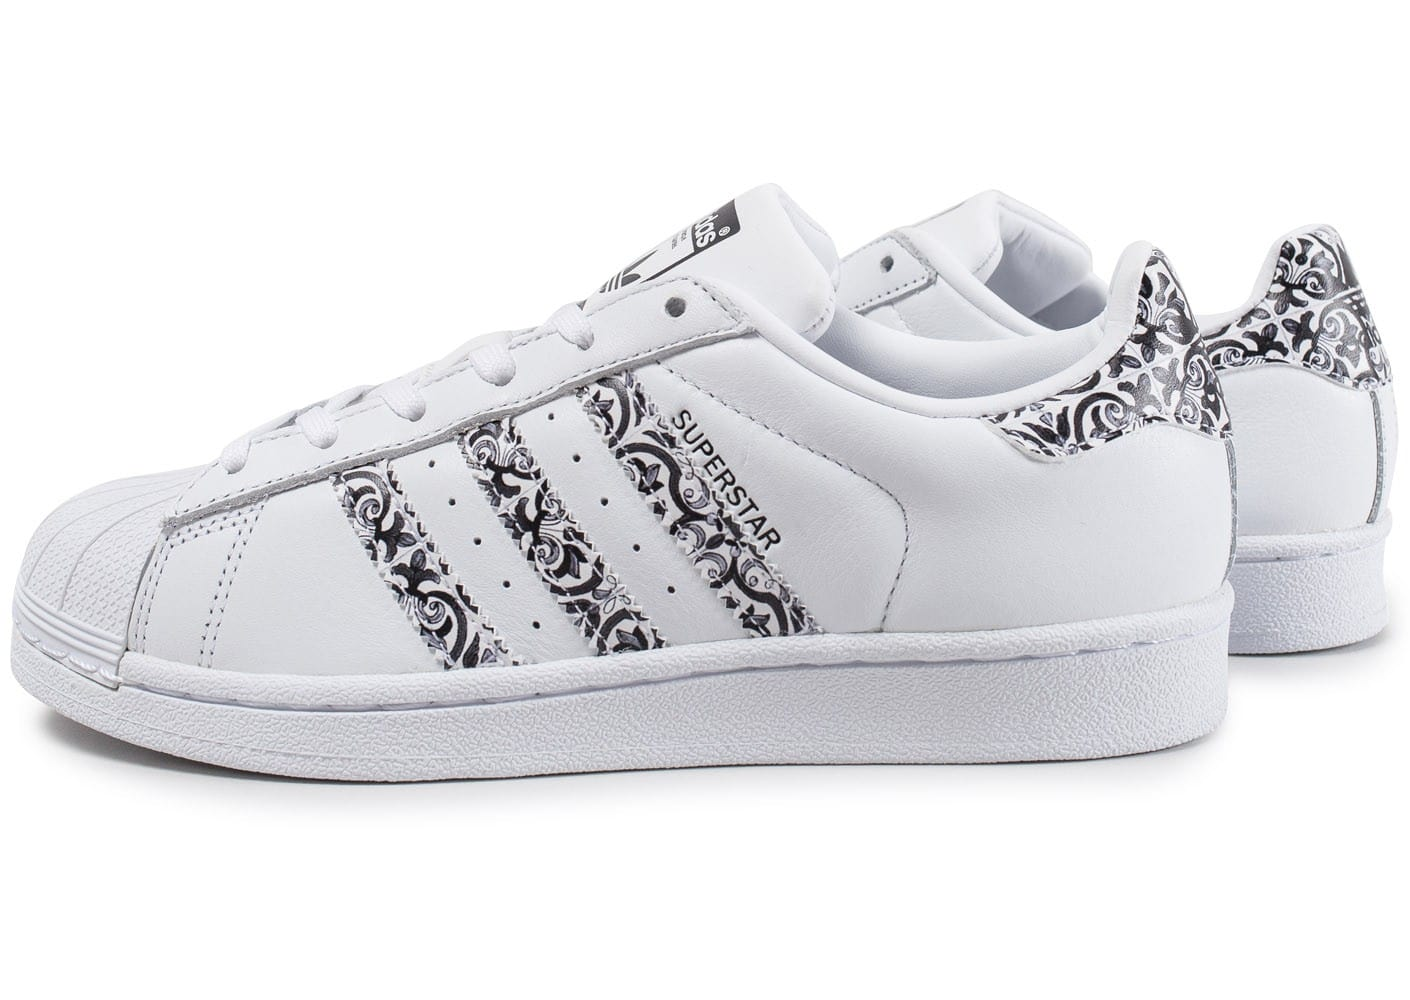 adidas superstar the farm company f blanc noir chaussures adidas chausport. Black Bedroom Furniture Sets. Home Design Ideas